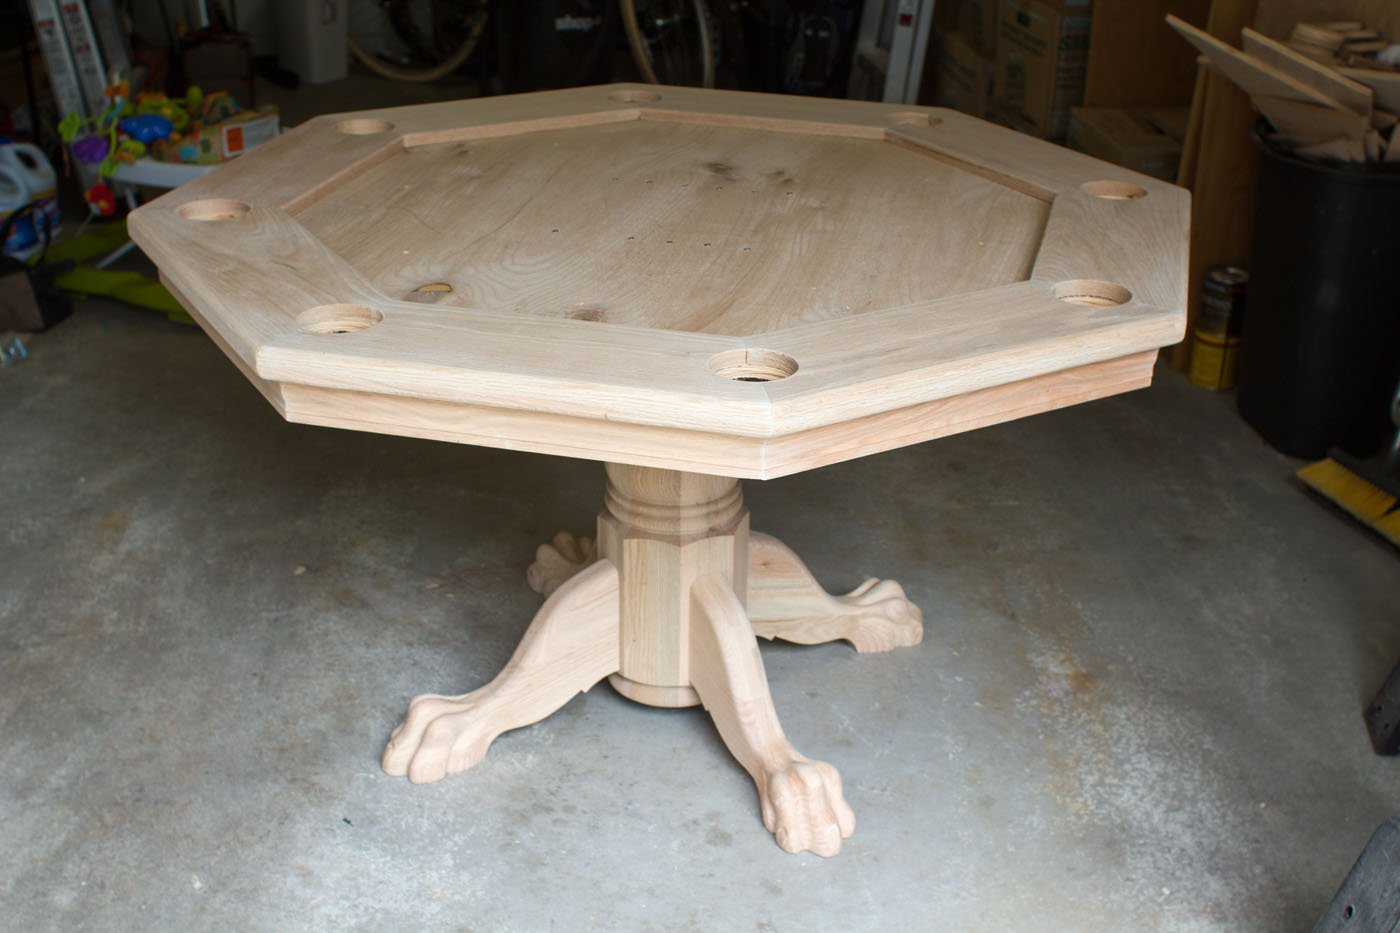 Diy octagon poker table plans ~ inkra